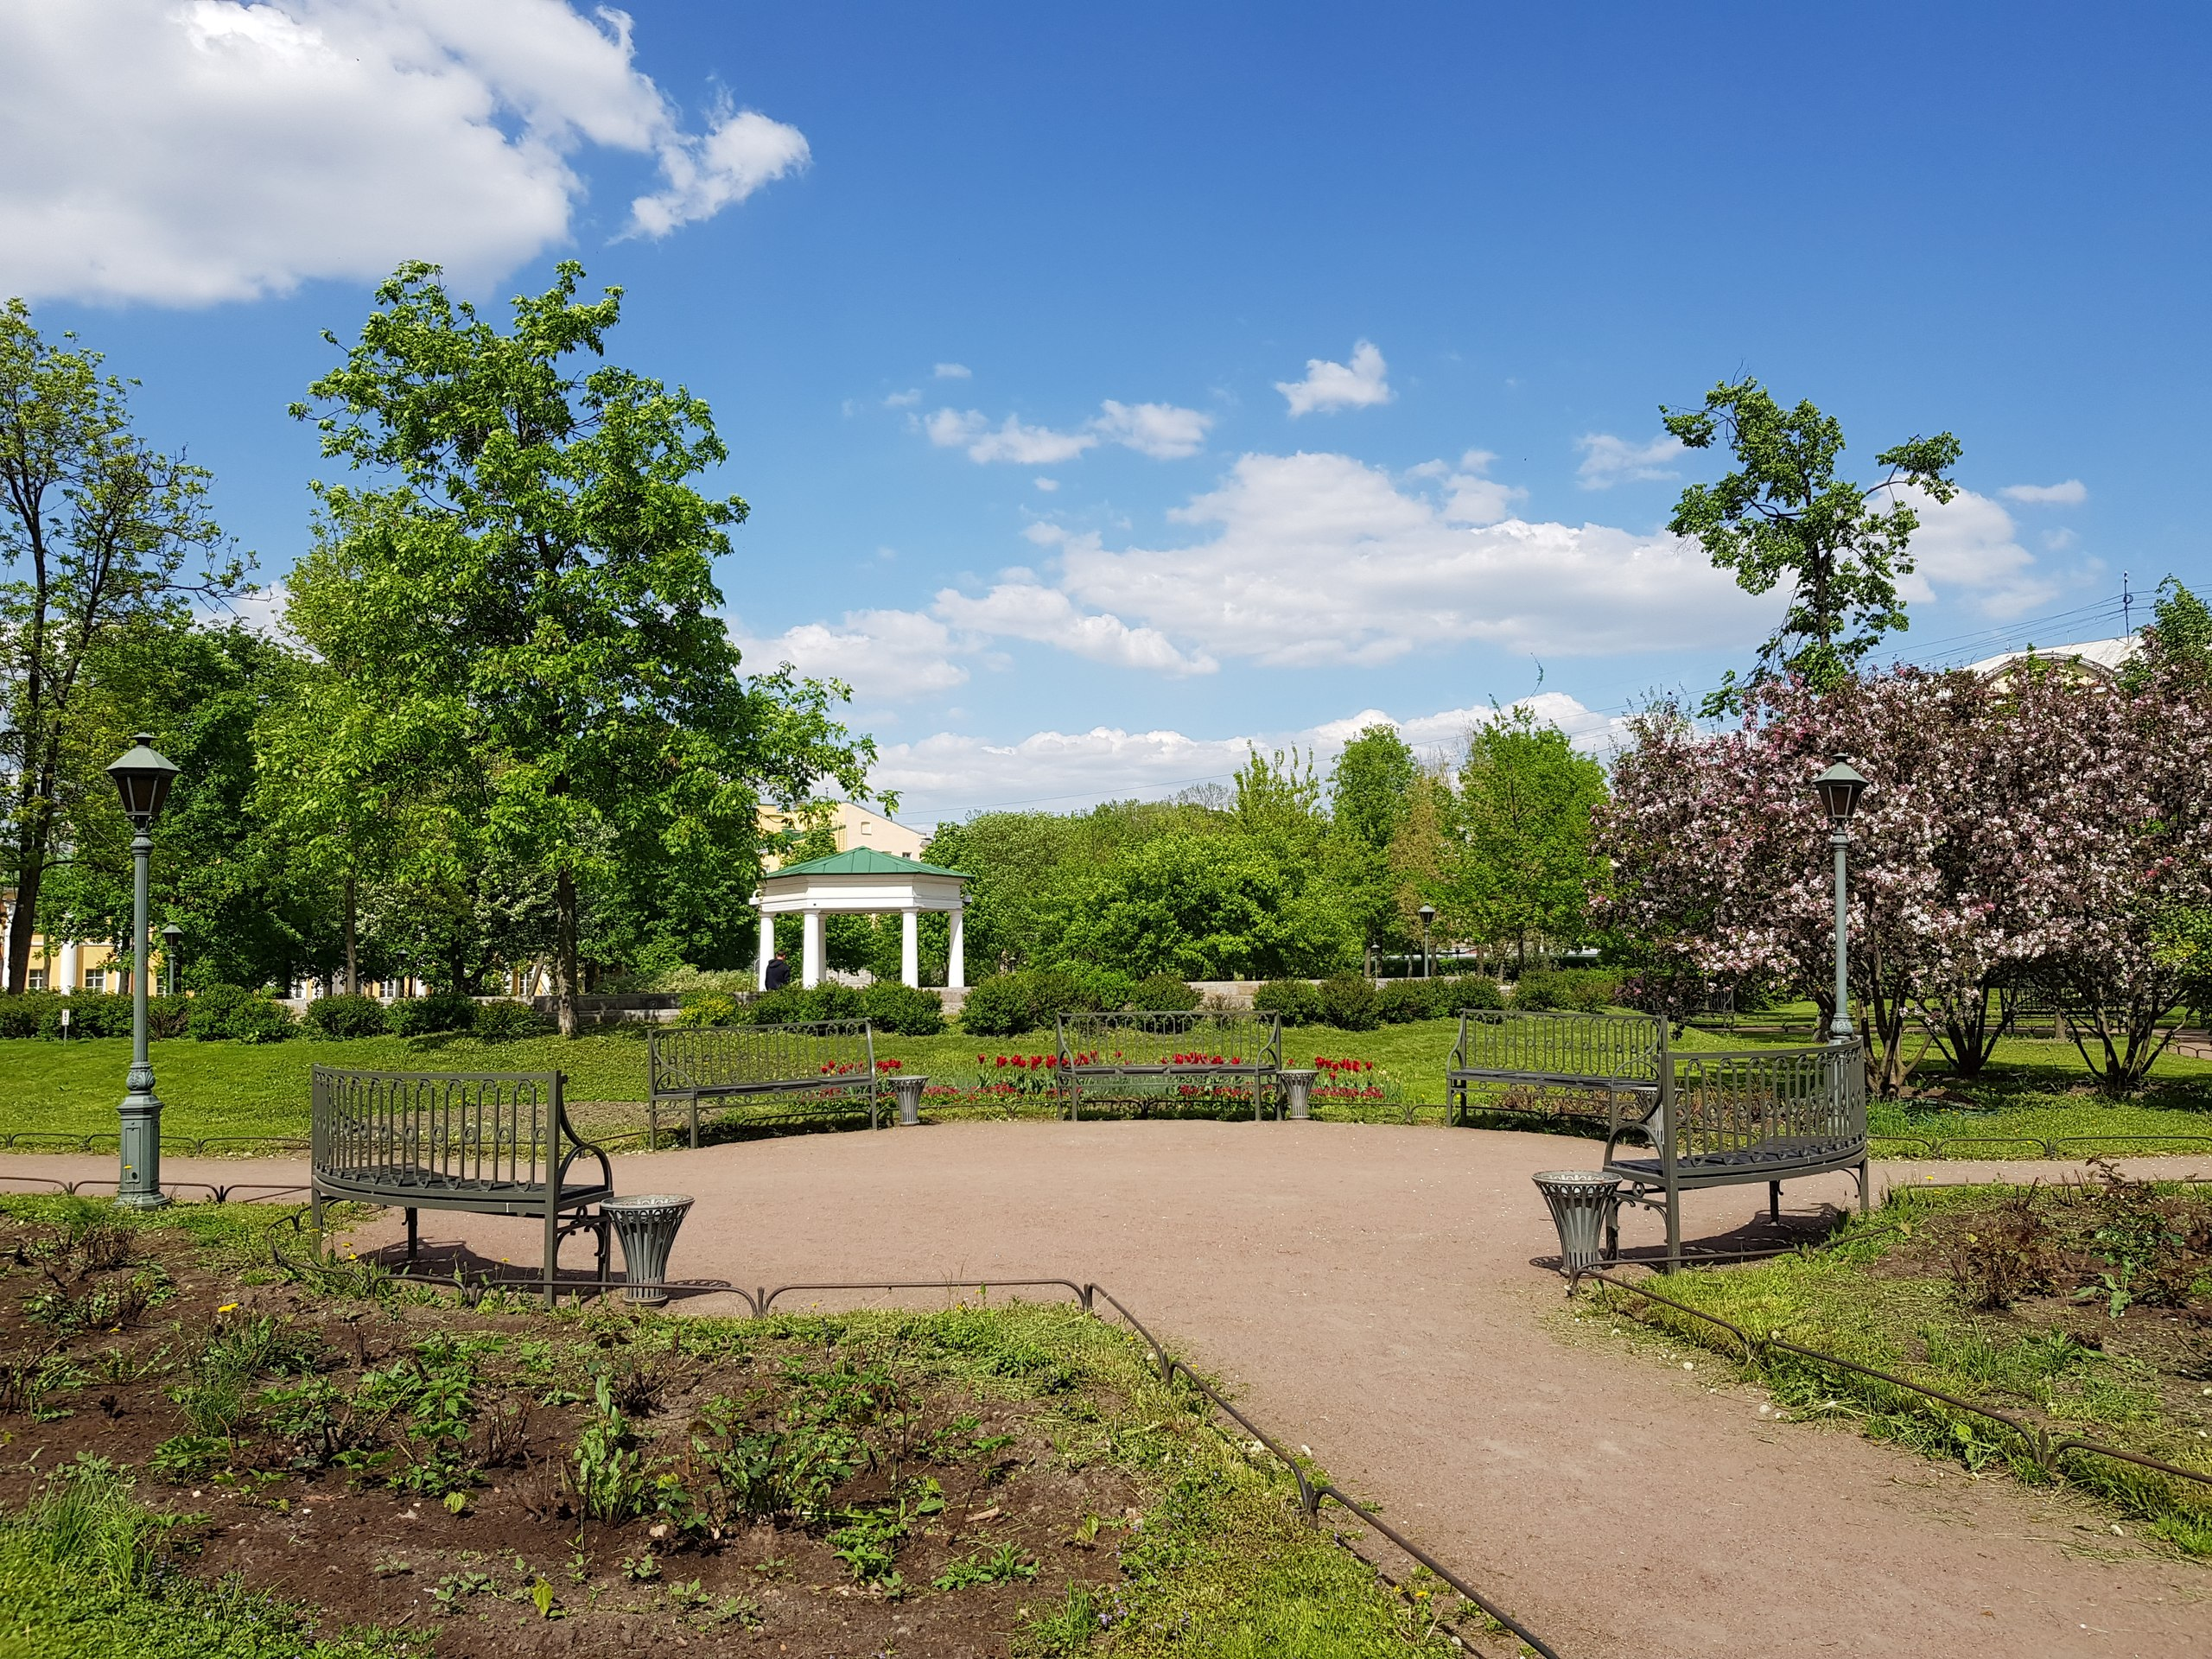 Парки Санкт-Петербурга / The Parks of St. Petersburg